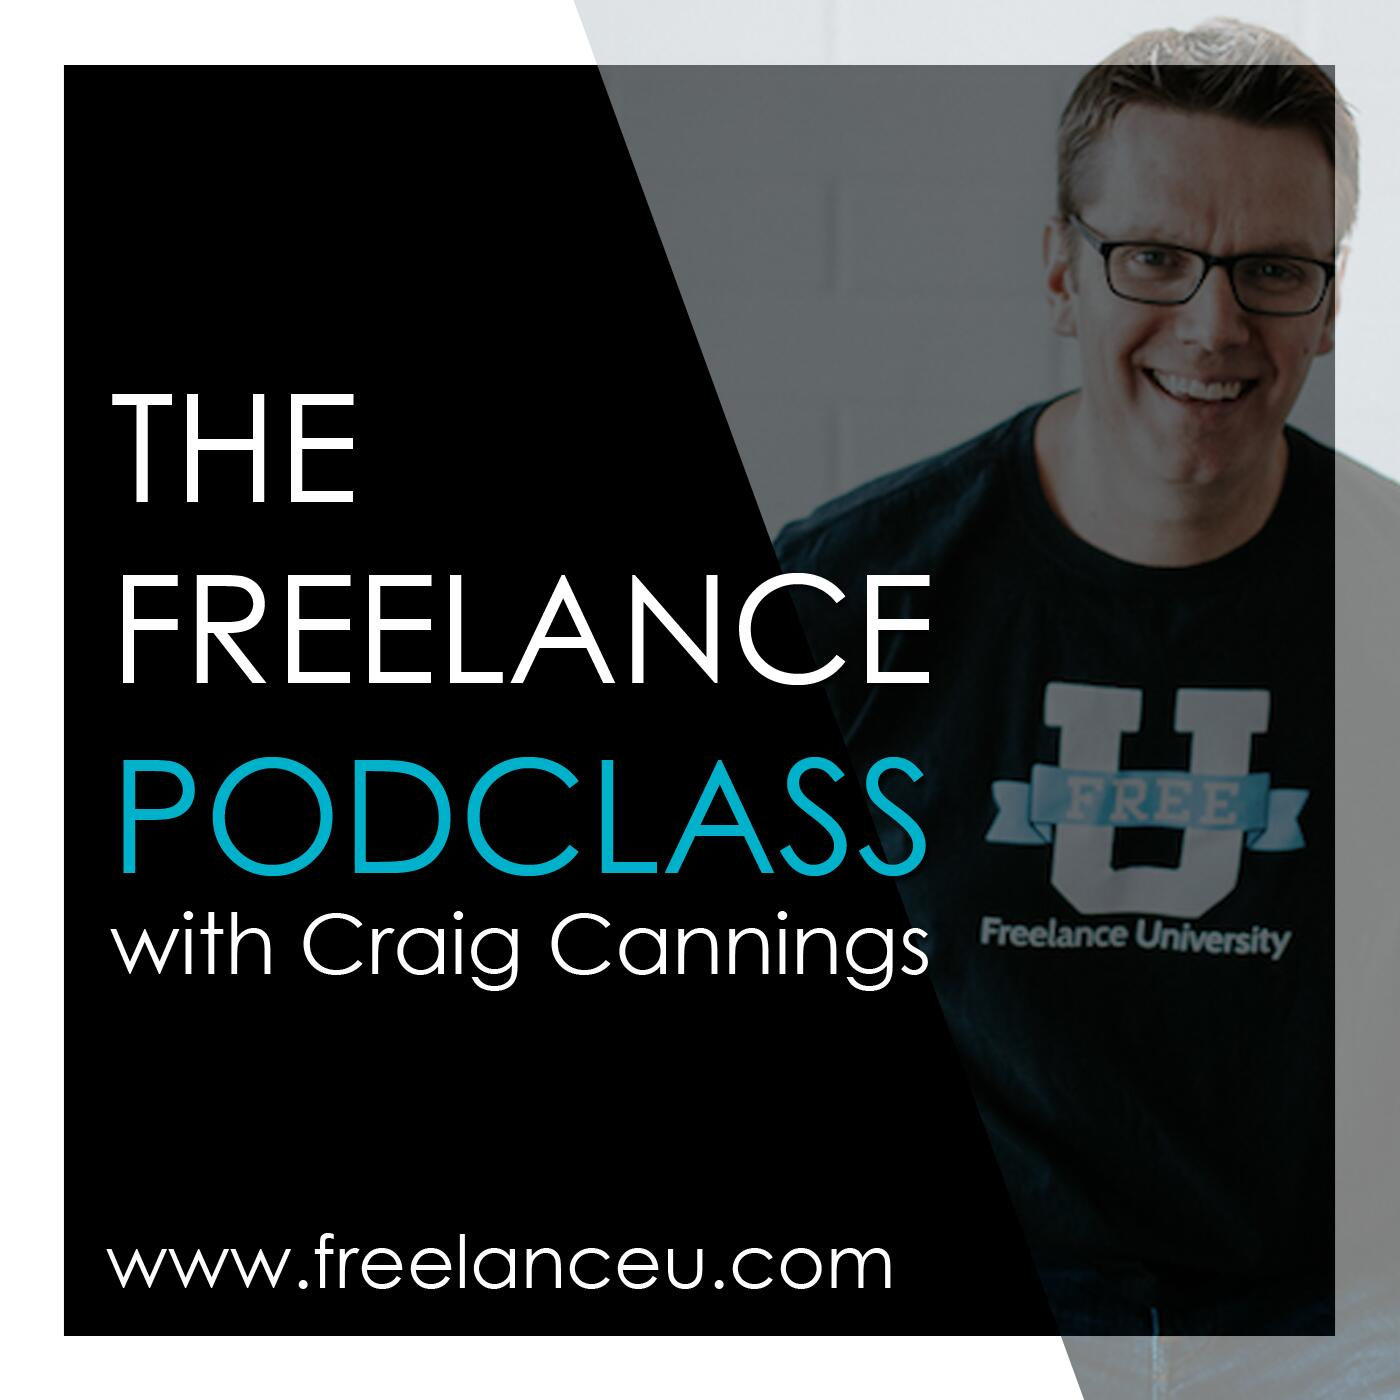 The Freelance Podclass